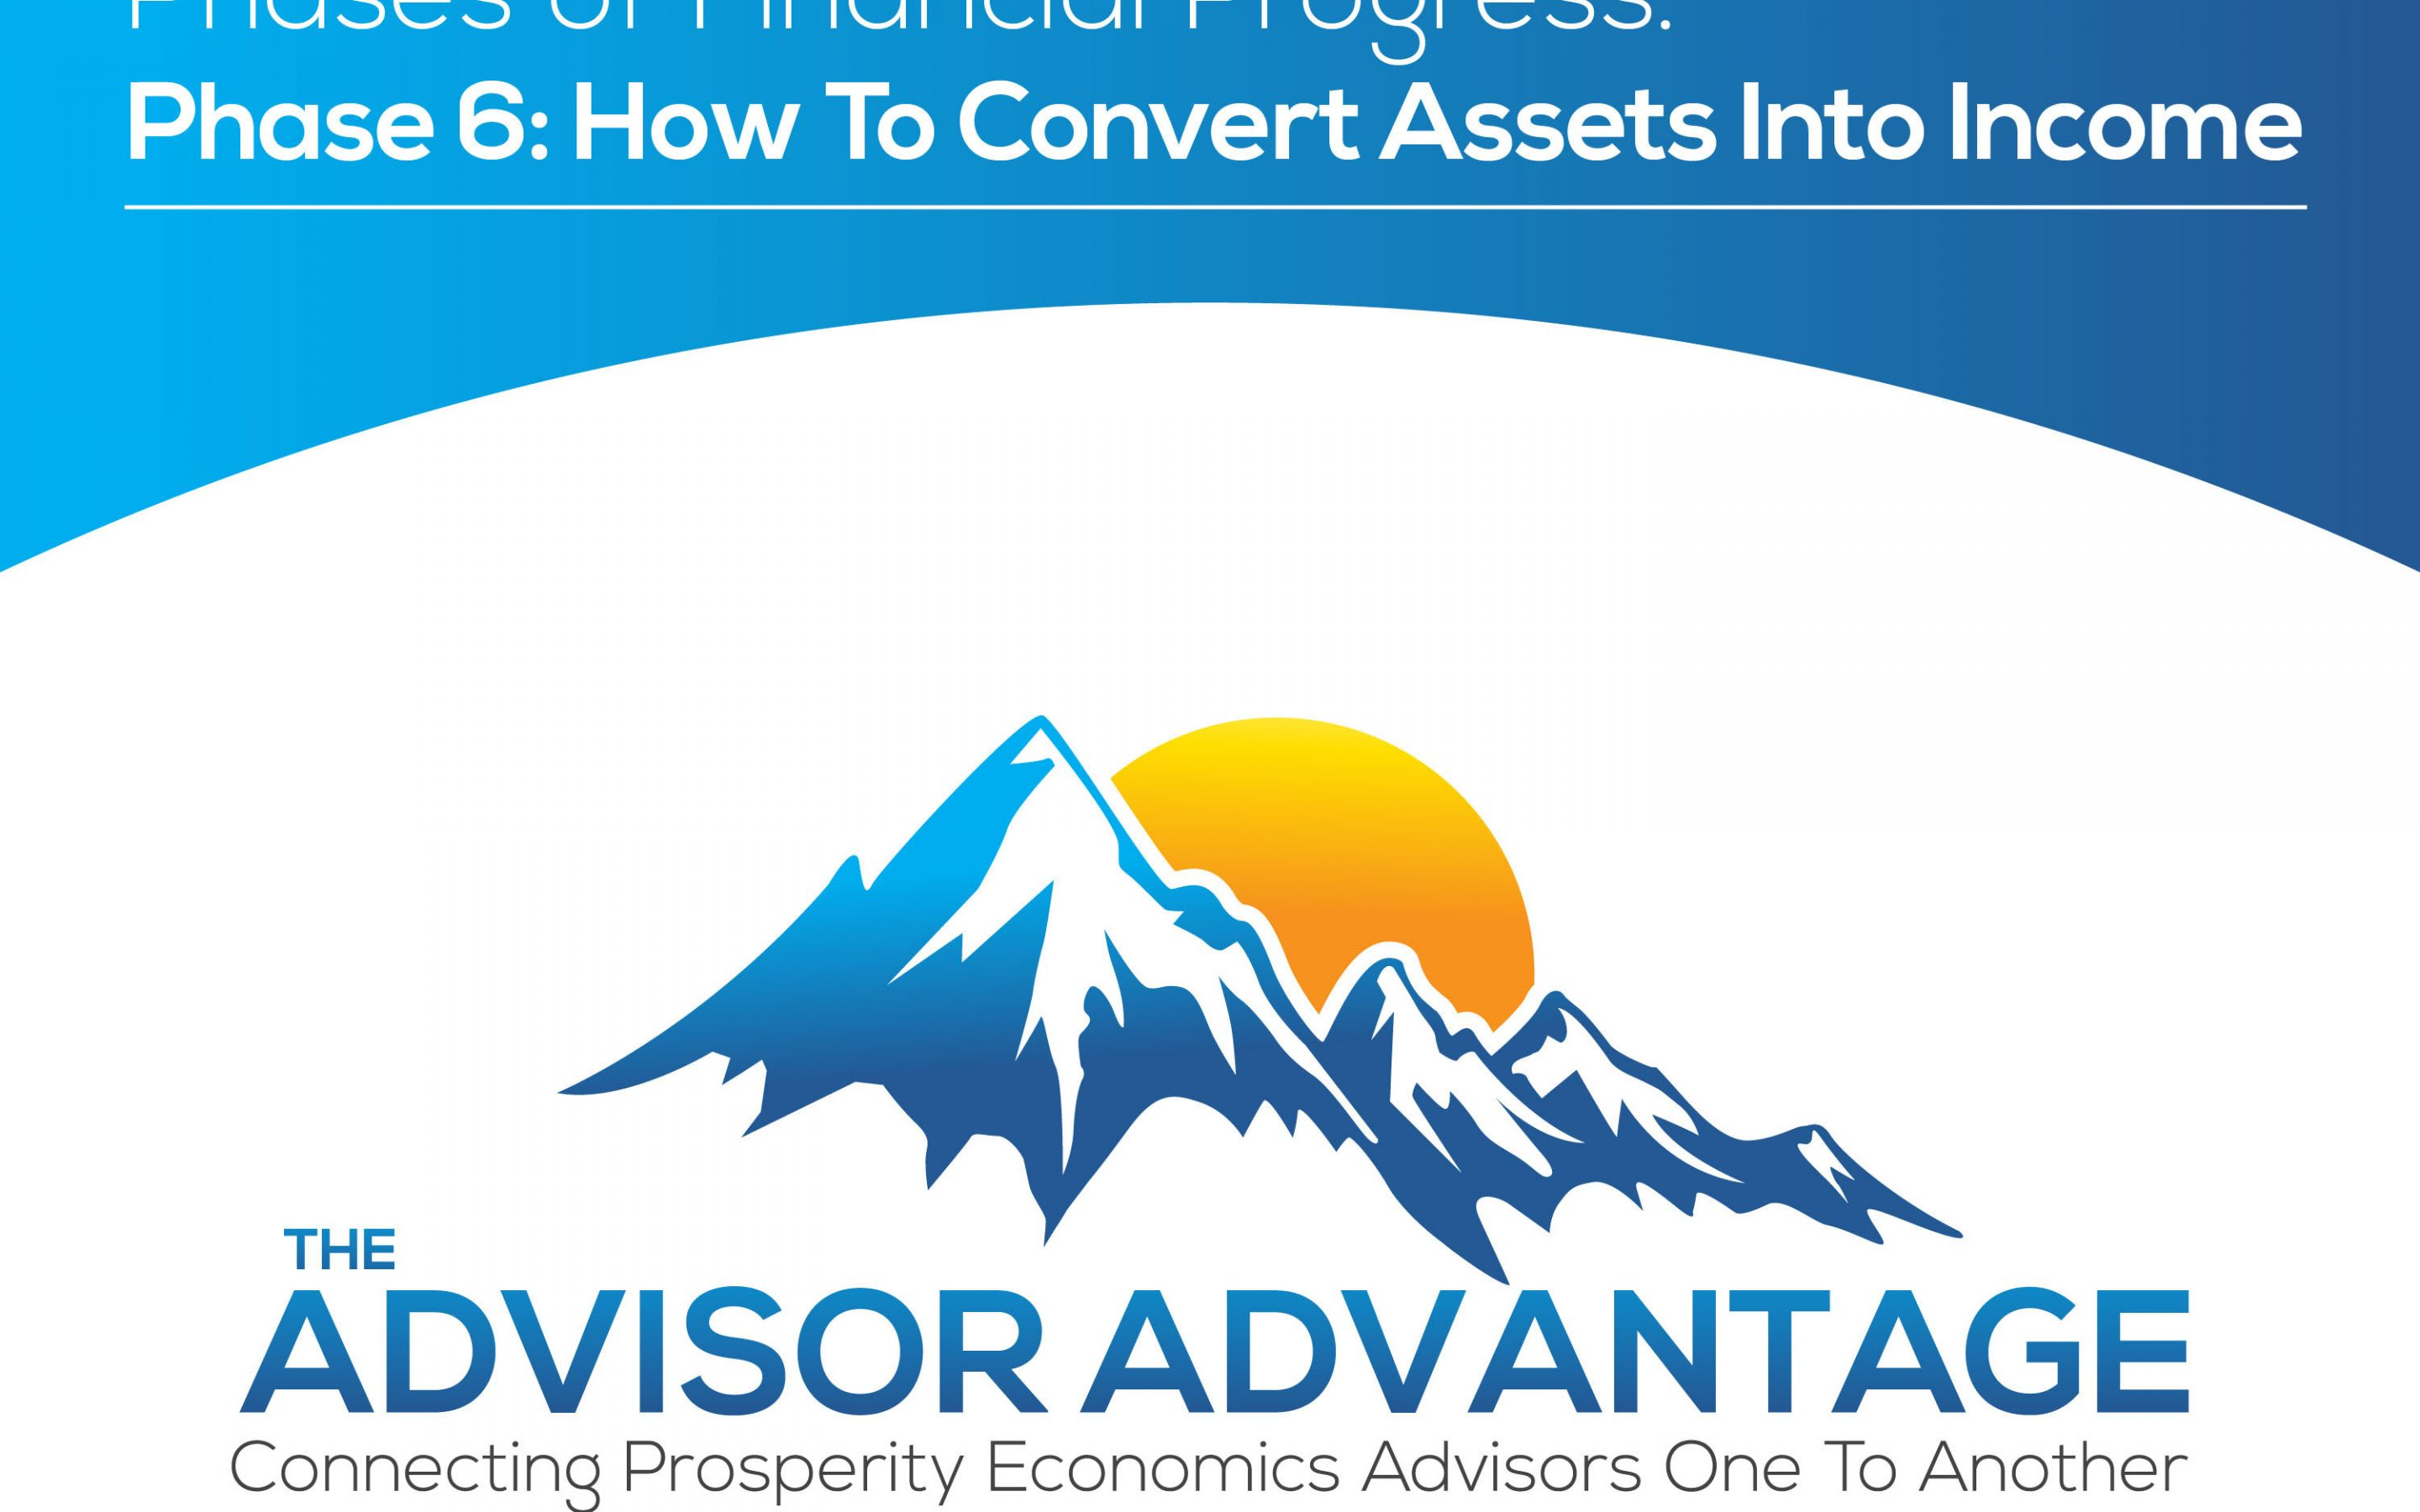 Phases of Financial Progress. Phase 6: How To Convert Assets Into Income – Episode 119